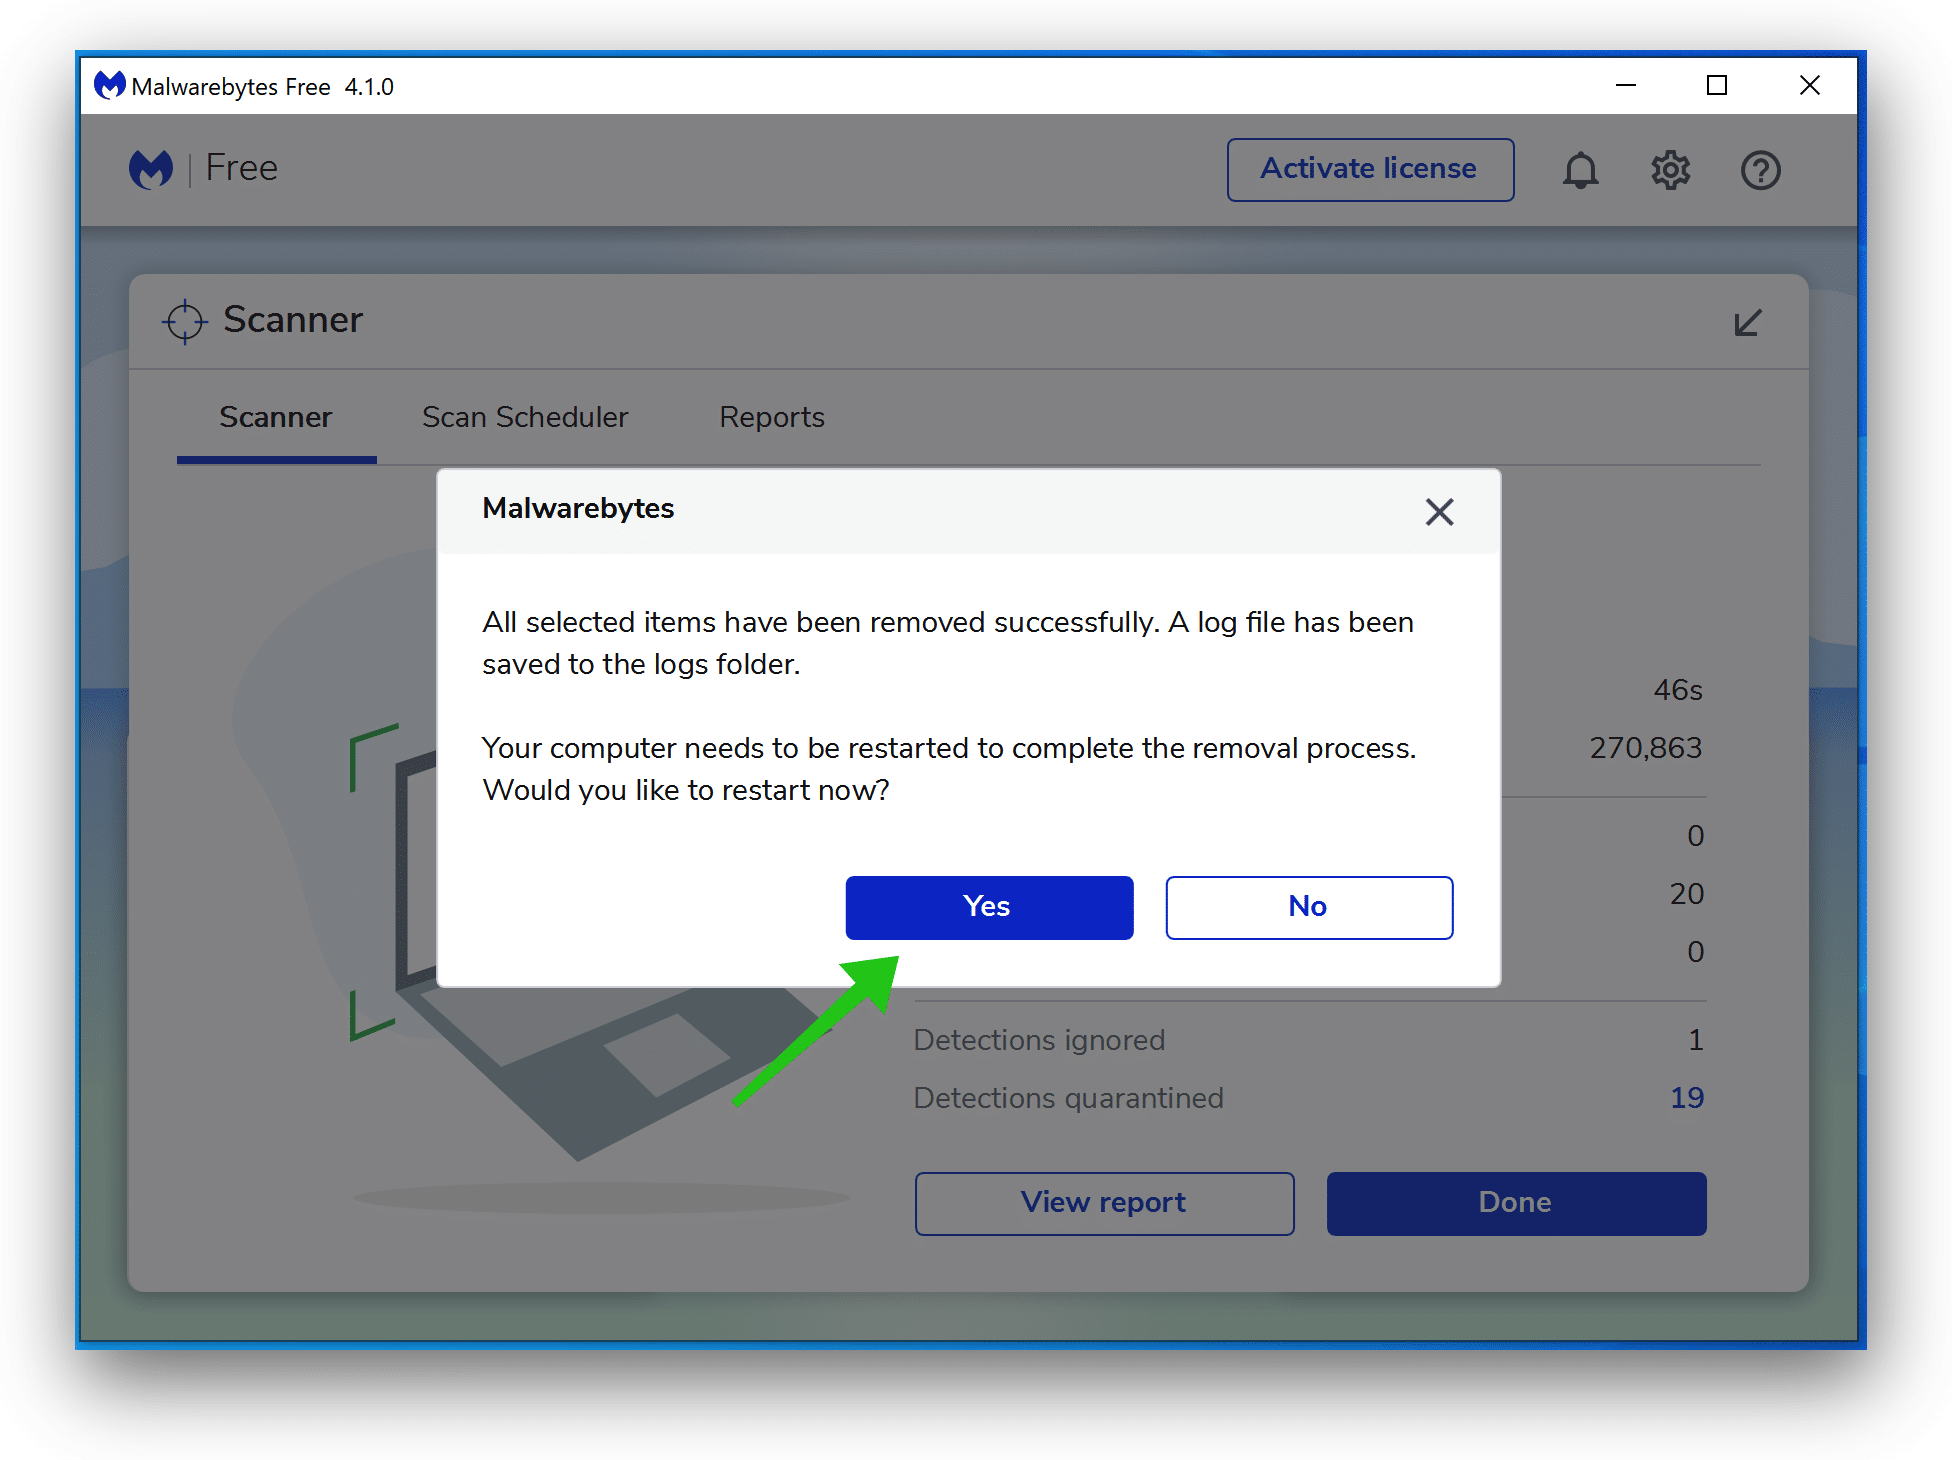 Reiniciar Windows - Malwarebytes